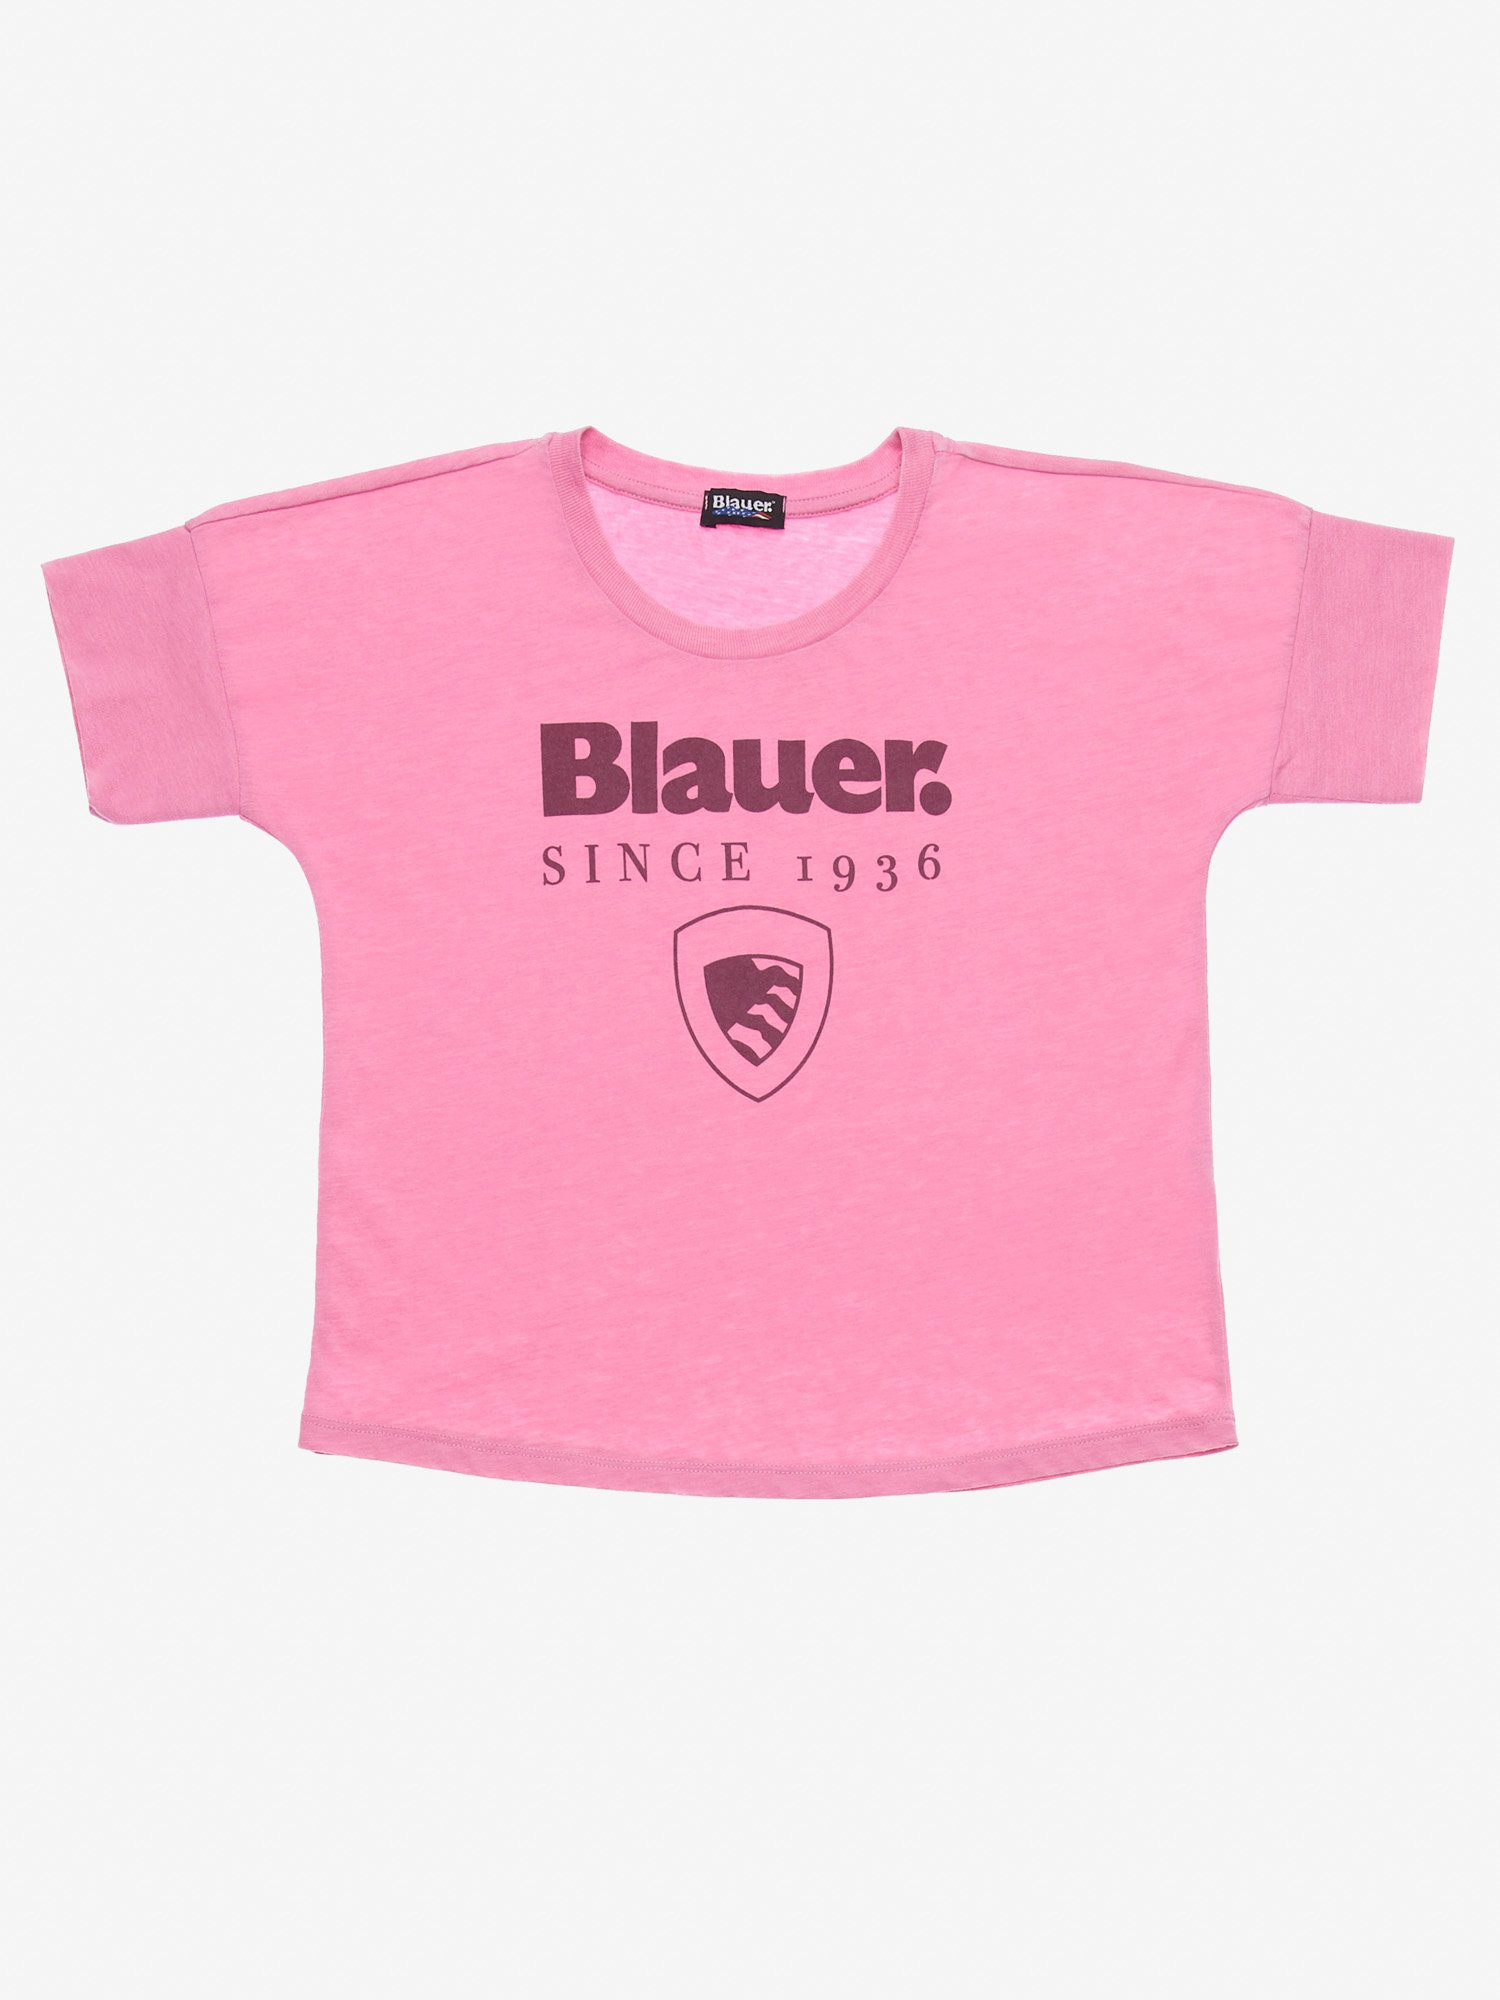 T-SHIRT JUNIOR DANZA - Blauer